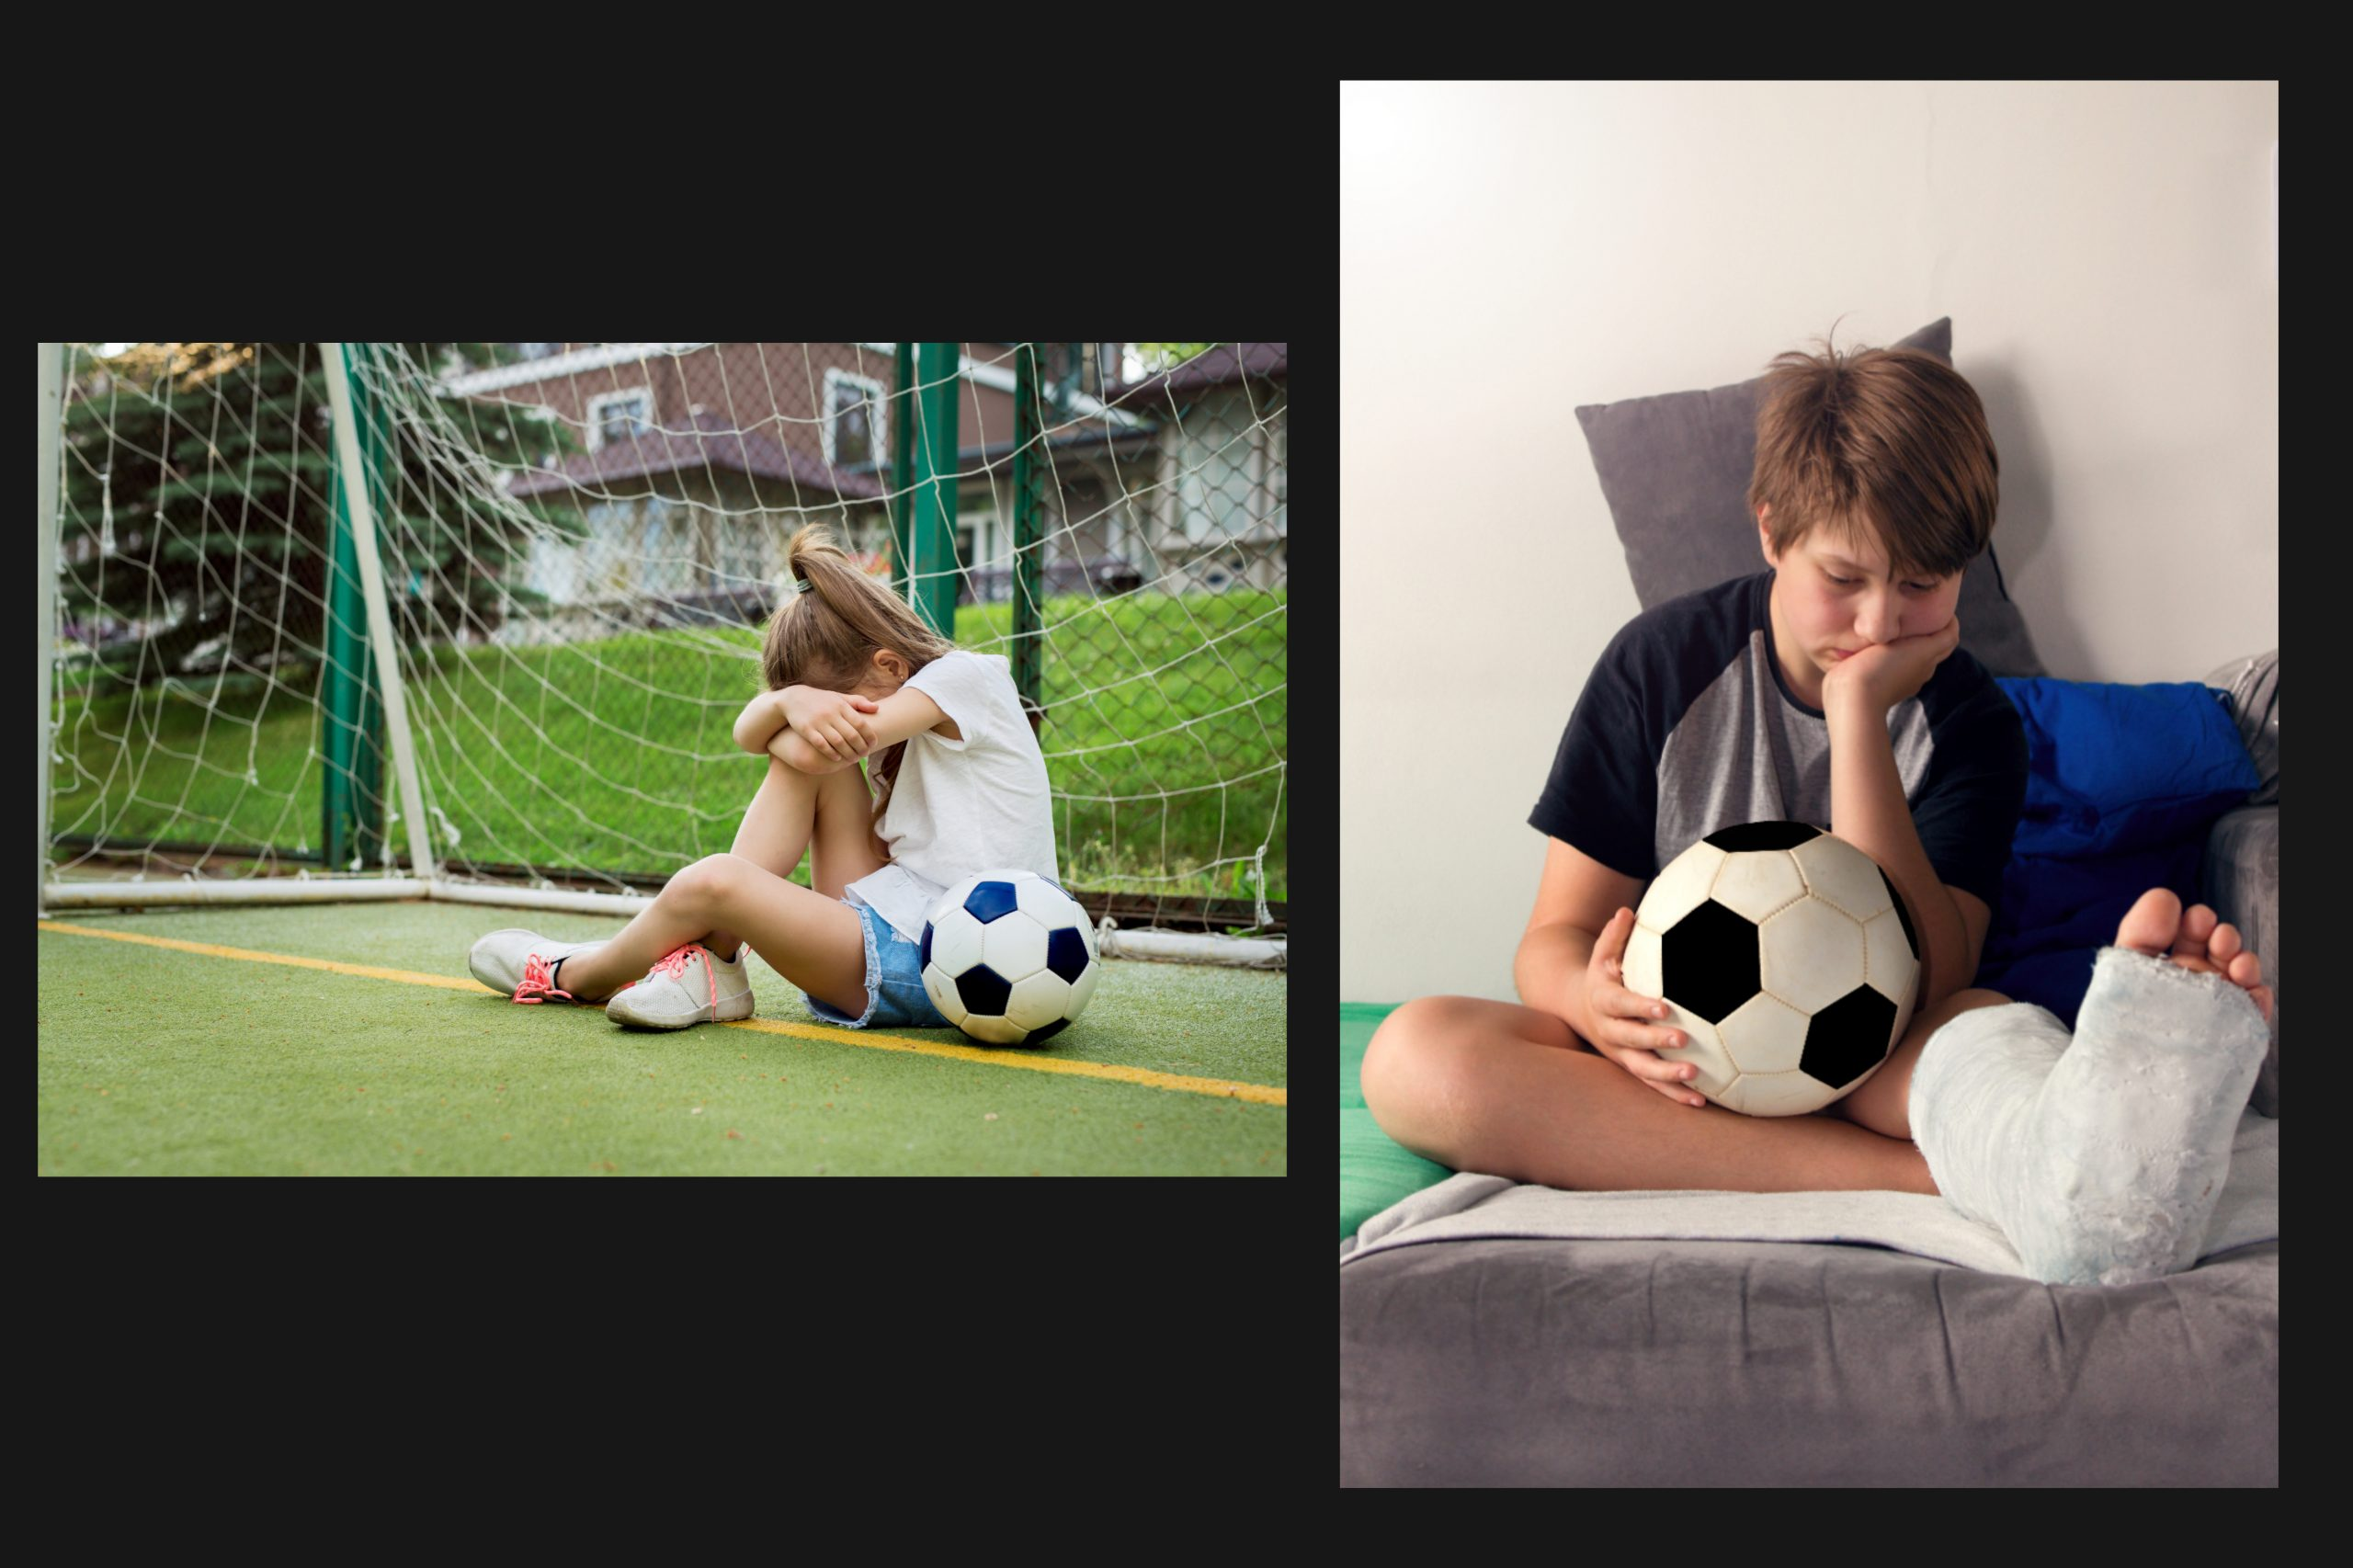 """Article """"7 common mistakes that will kill your Kid's football career"""" by Con Boutsianis"""